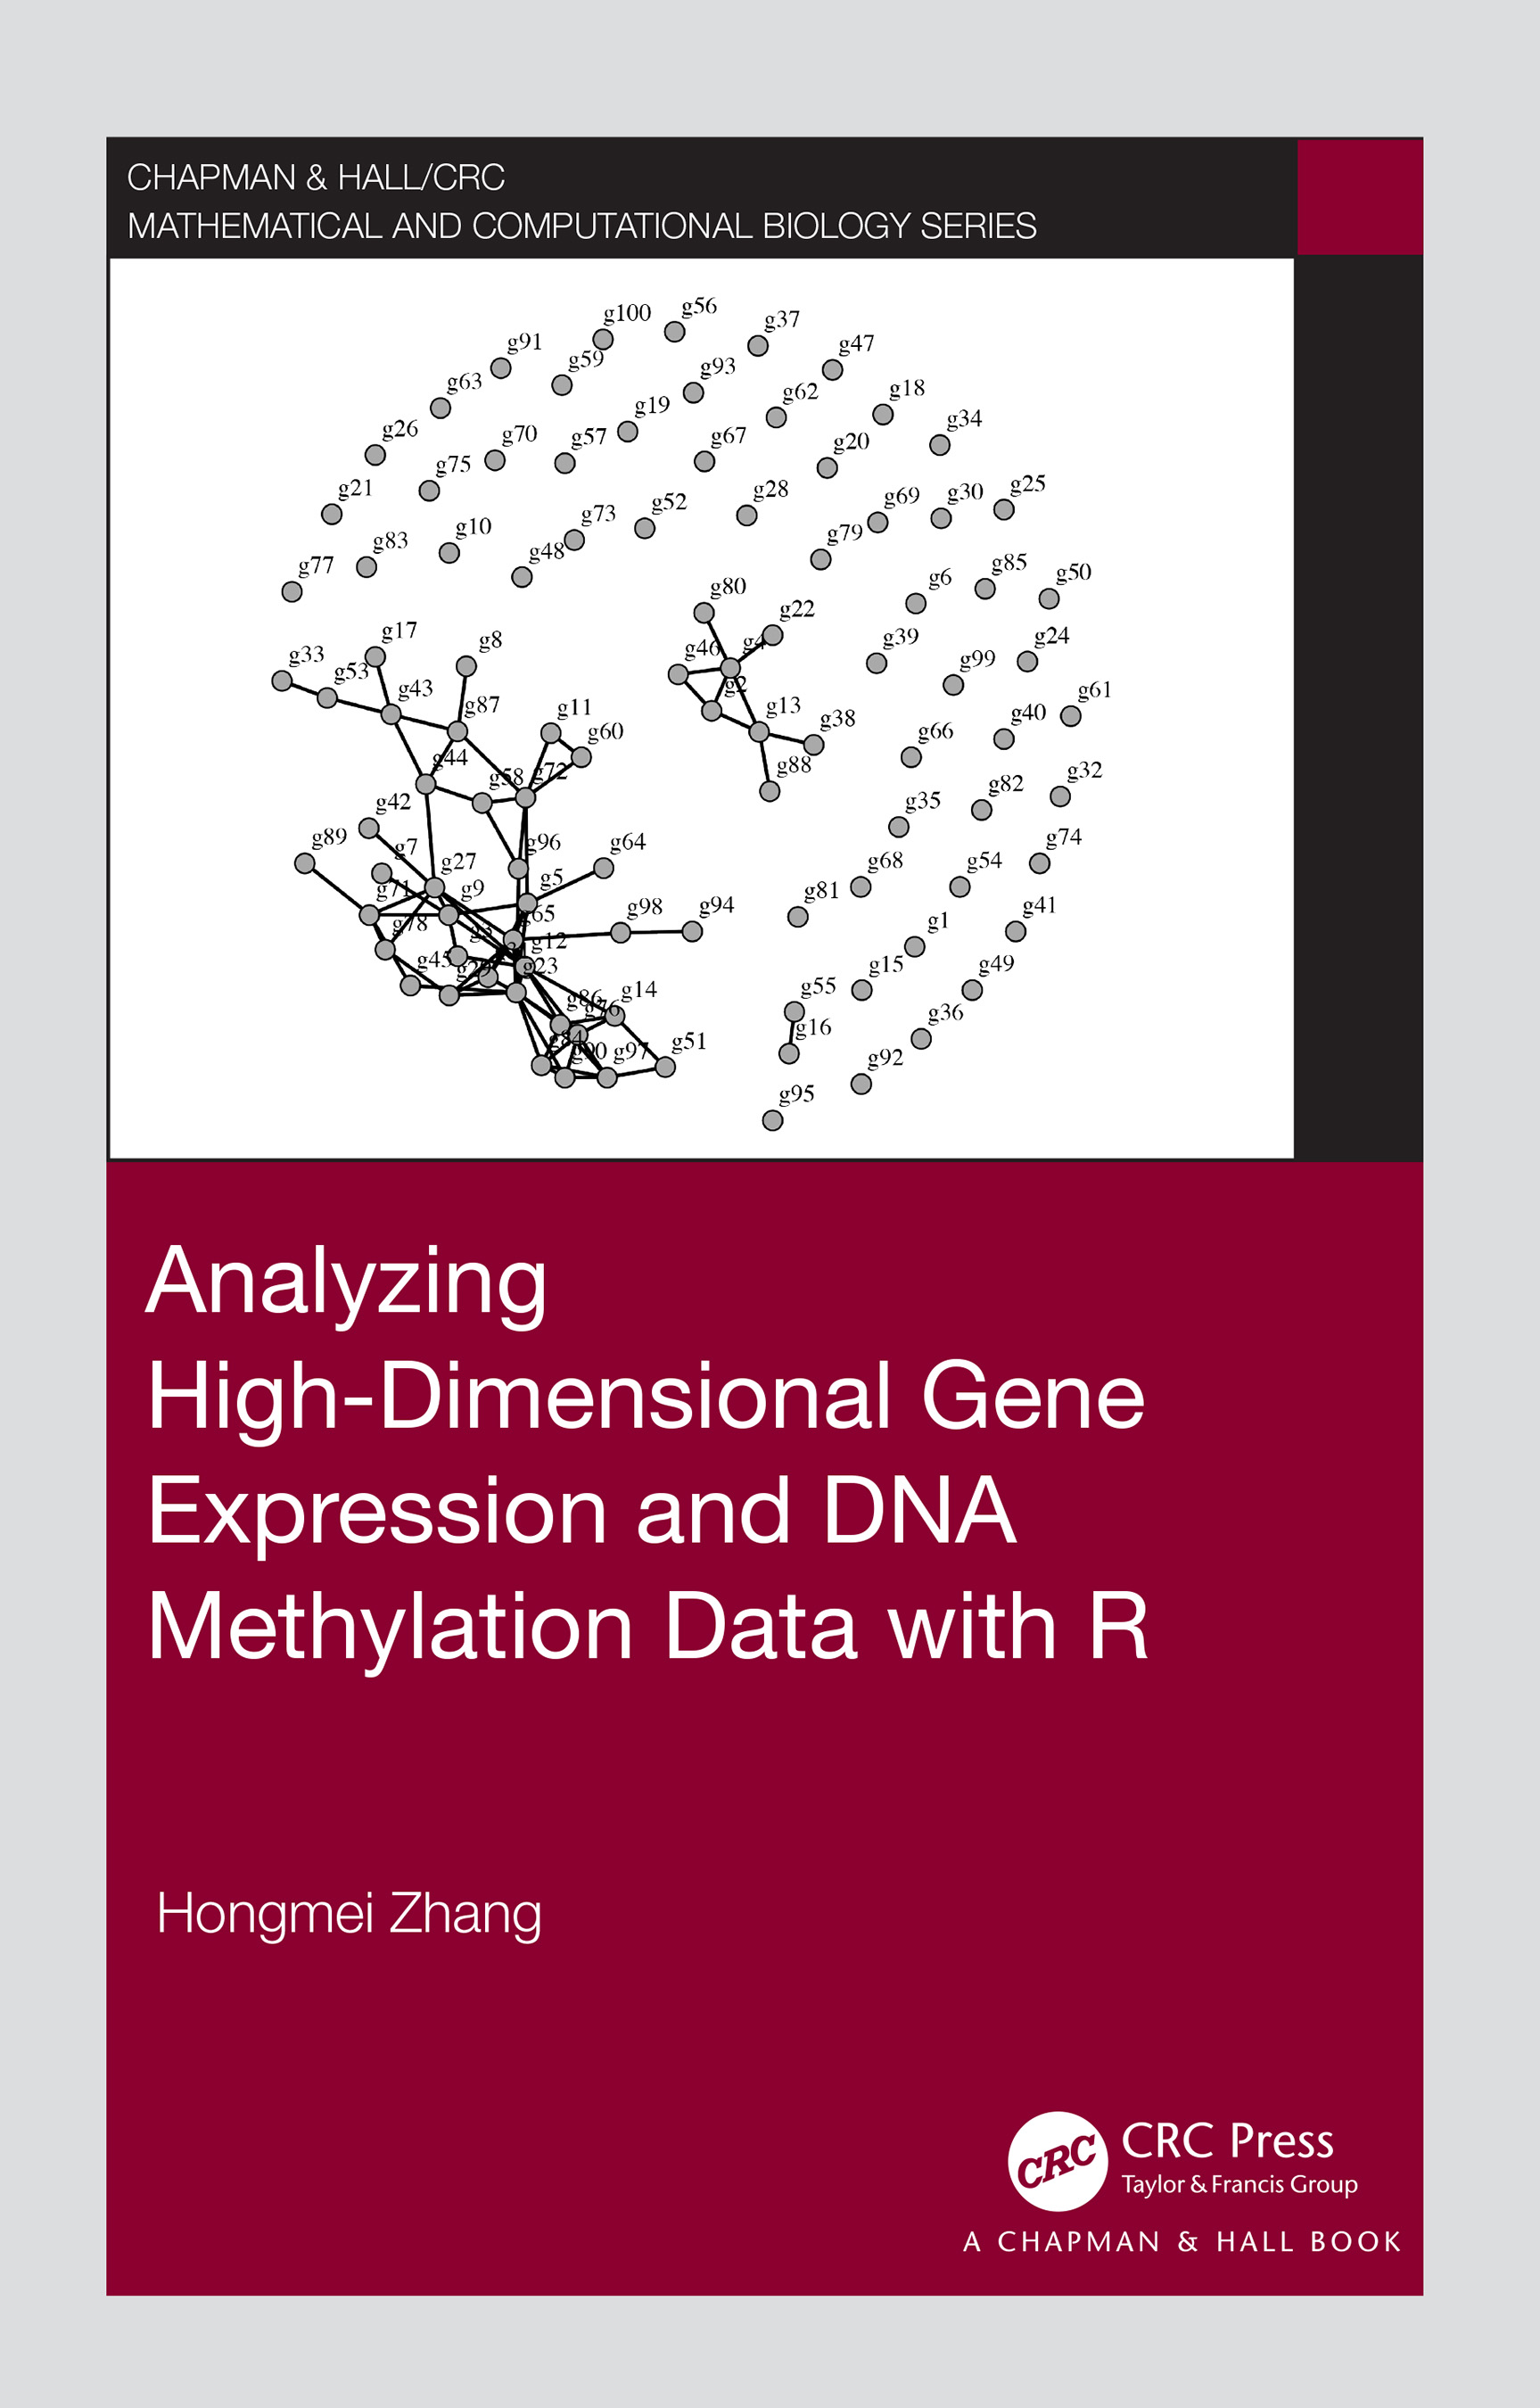 Analyzing High-Dimensional Gene Expression and DNA Methylation Data with R book cover